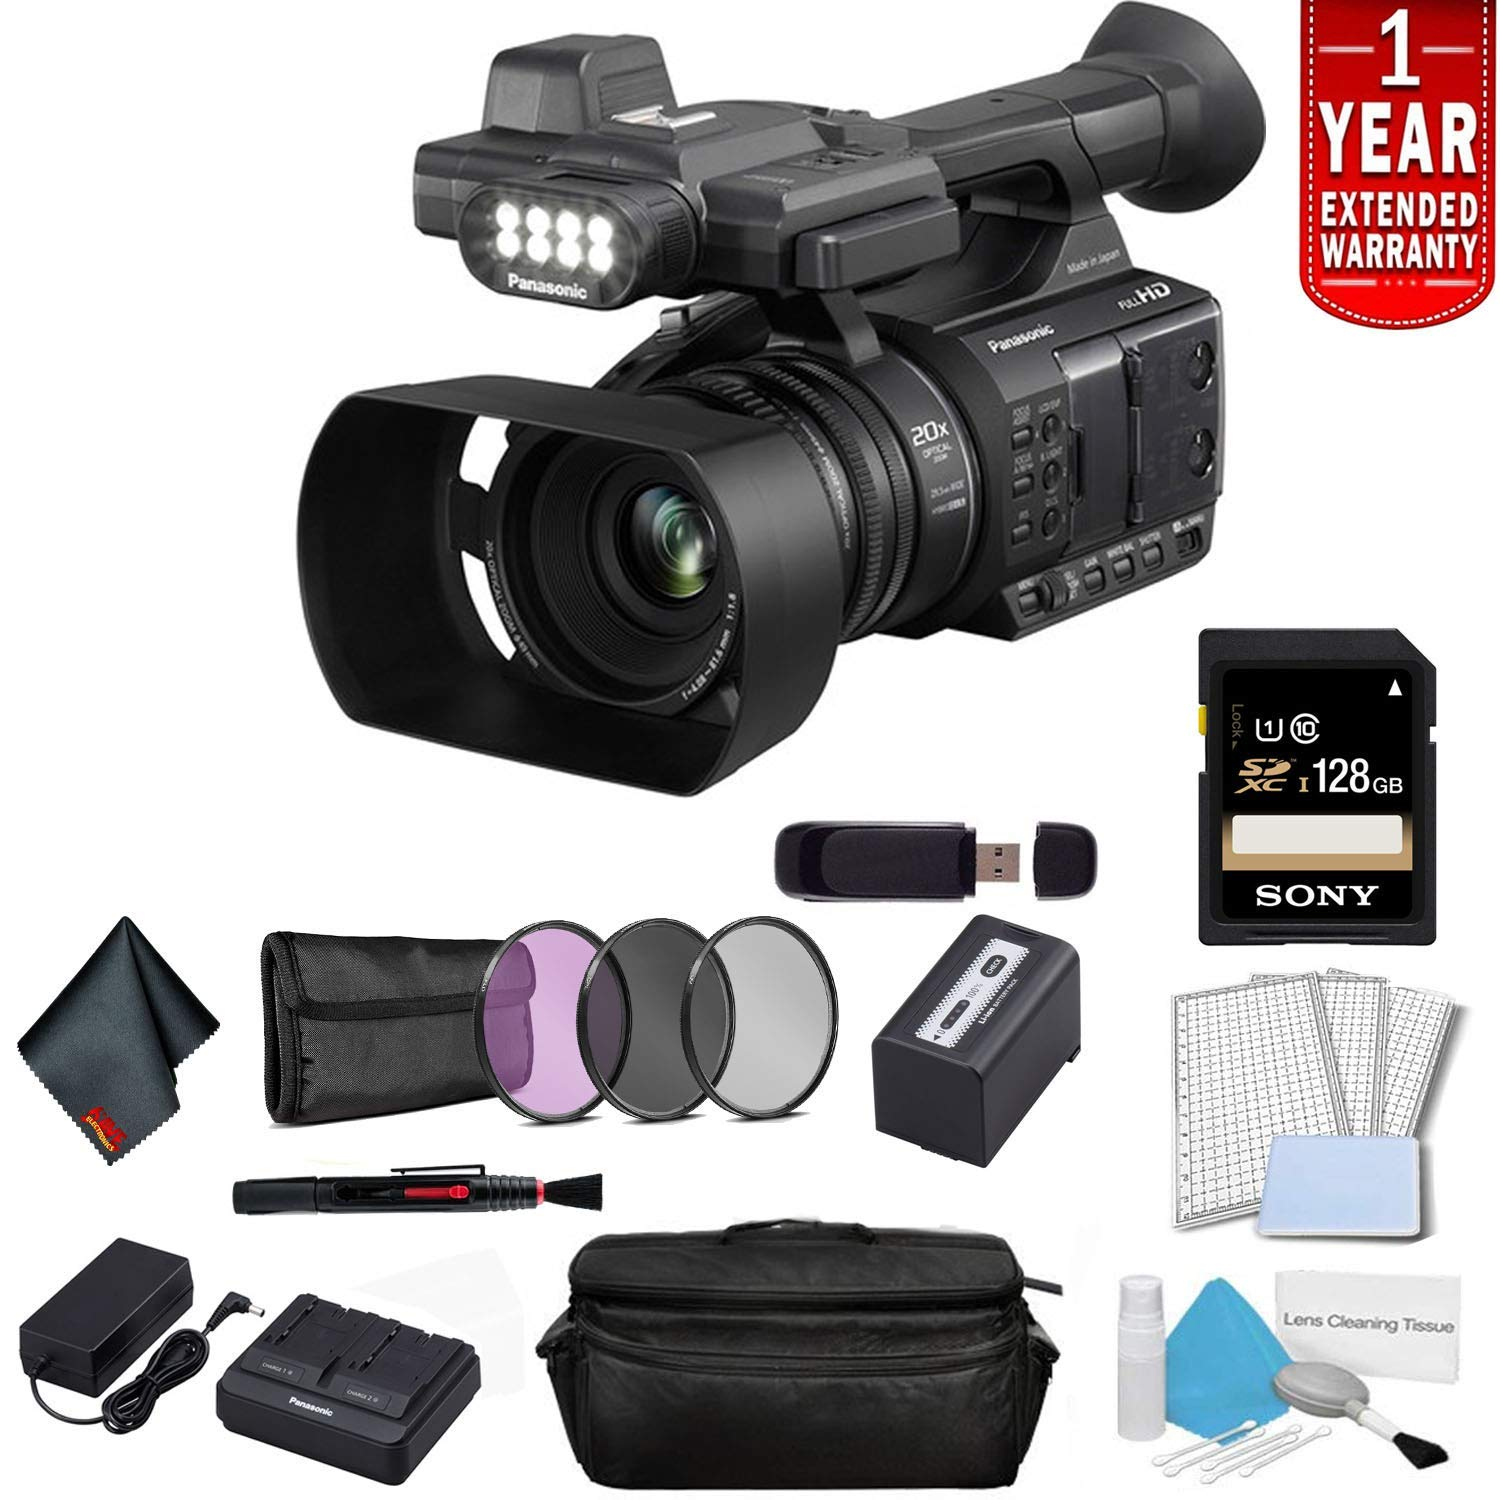 Panasonic AG-AC30 Full HD Camcorder with Touch Panel LCD Viewscreen and Built-in LED Light (US Version) Bundle with 1 Year Extended Warranty, Sony 128GB SDXC Memory Card + 3 Piece Filter Kit + More by Panasonic